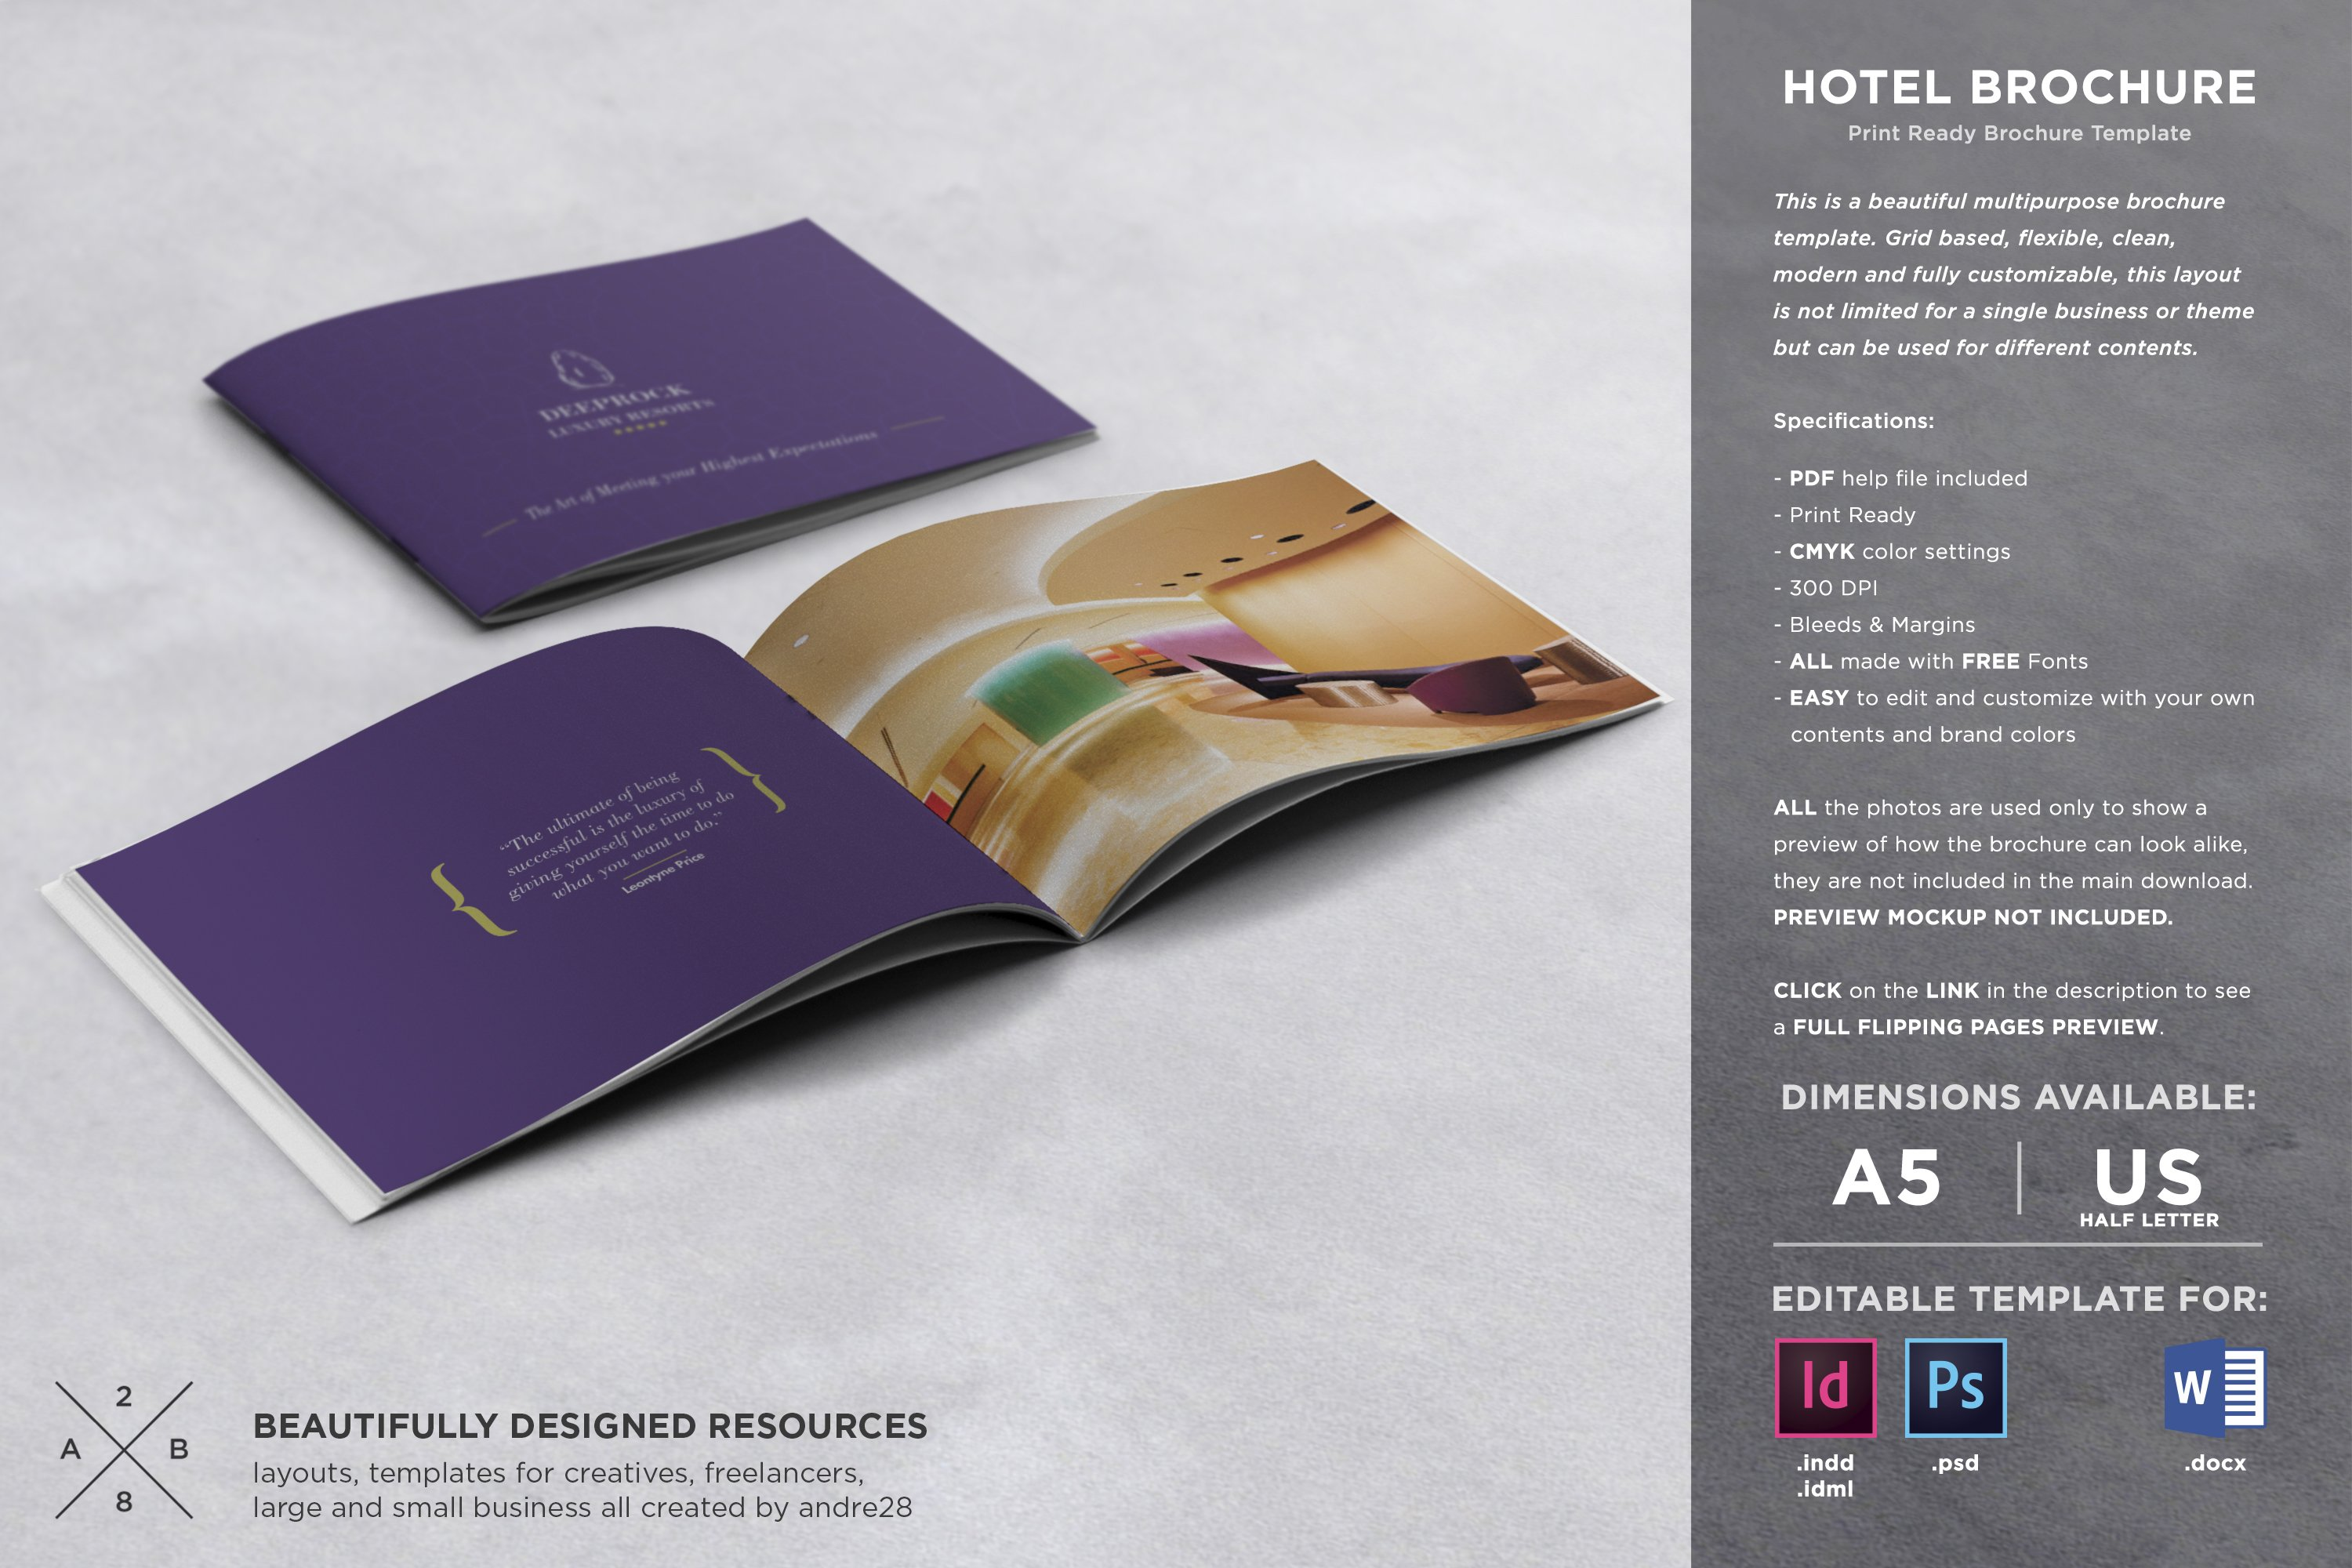 Hotel Brochure Template Photos Graphics Fonts Themes Templates - A5 brochure template